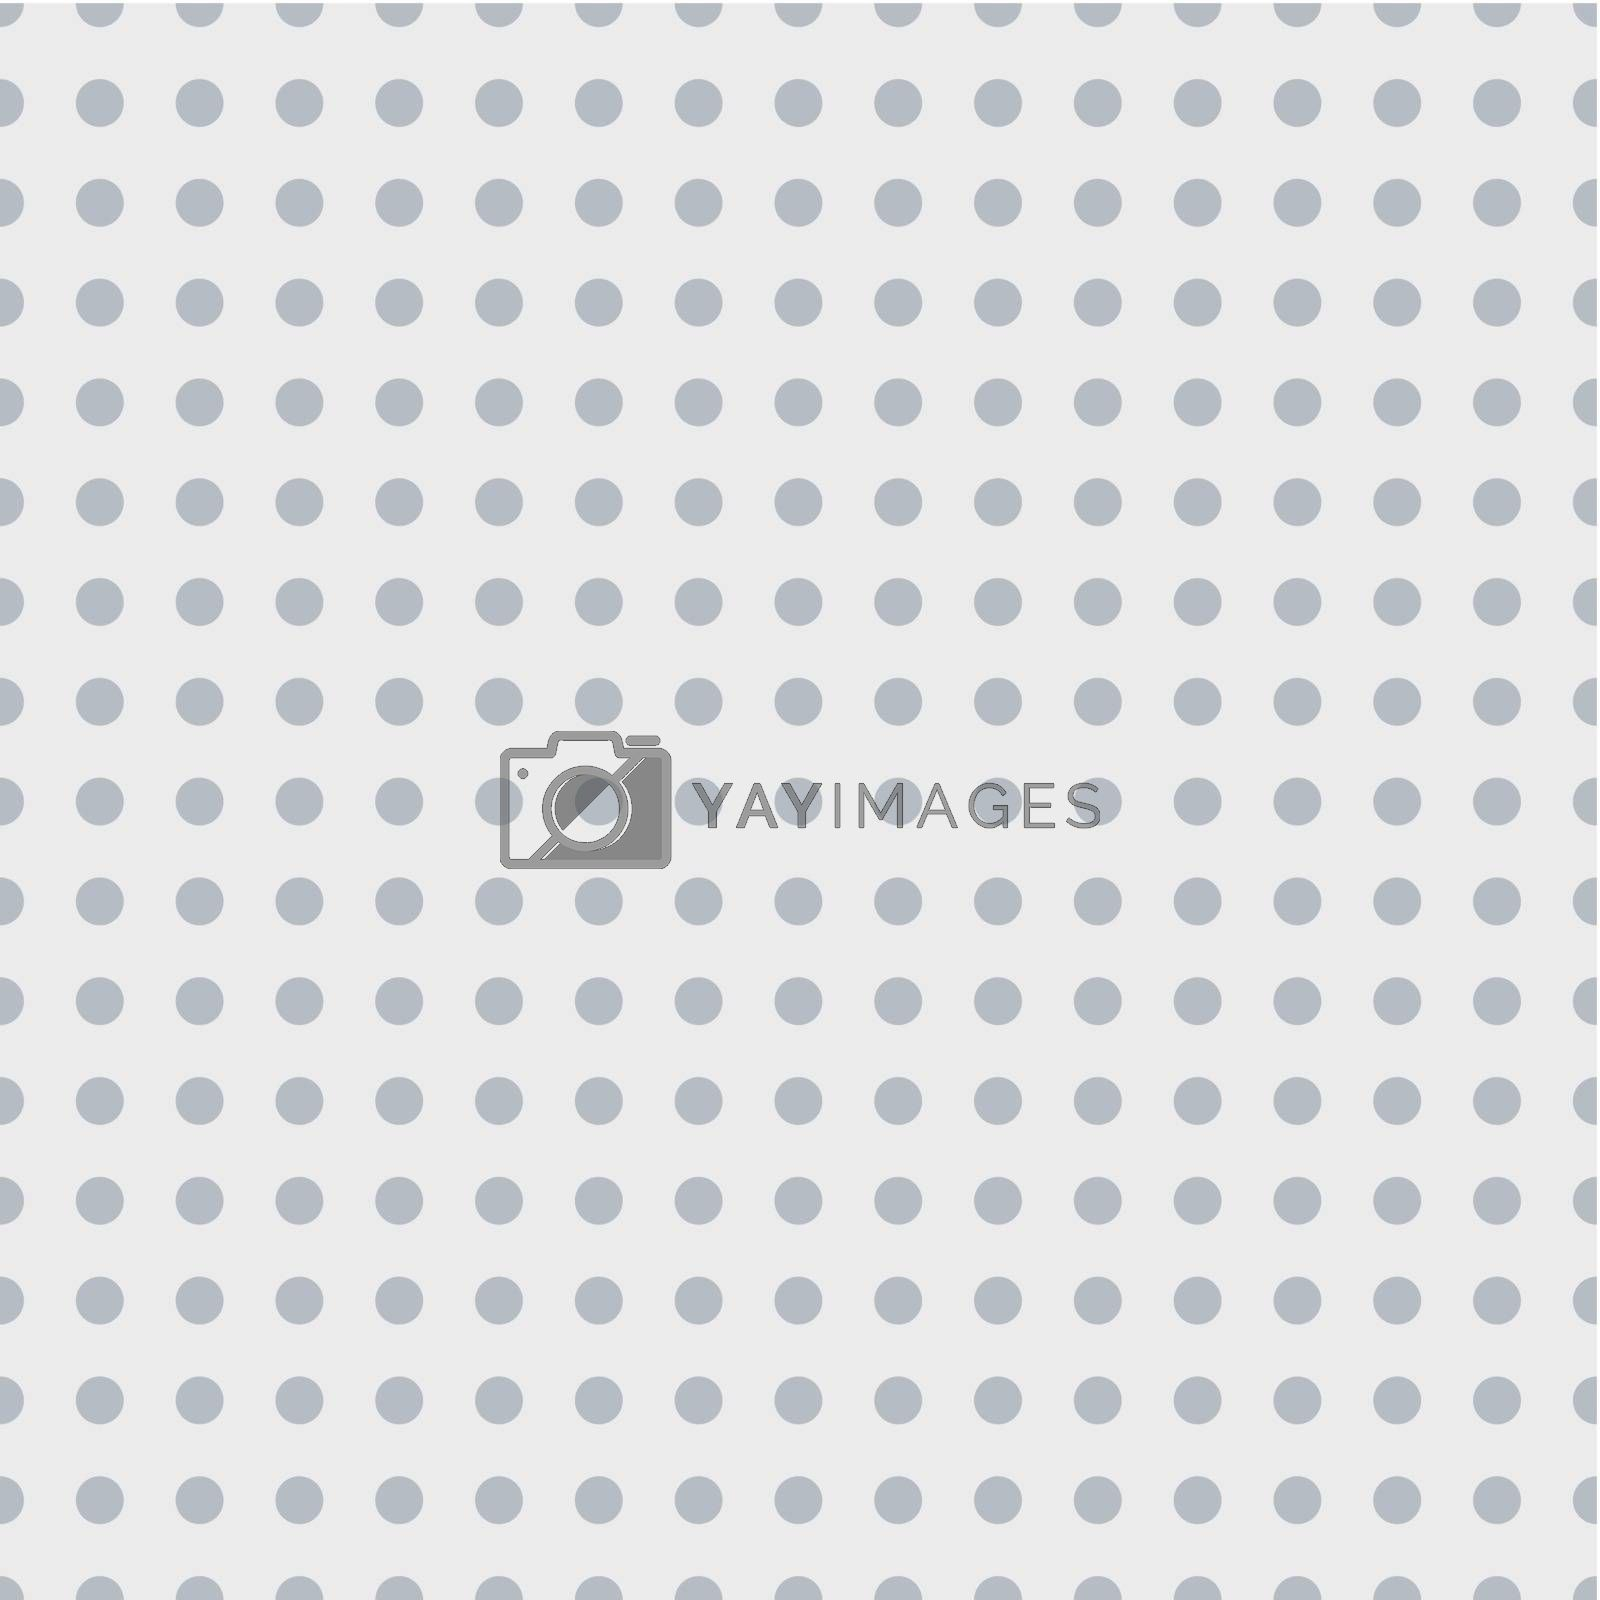 Royalty free image of Abstract spotty background by dvarg